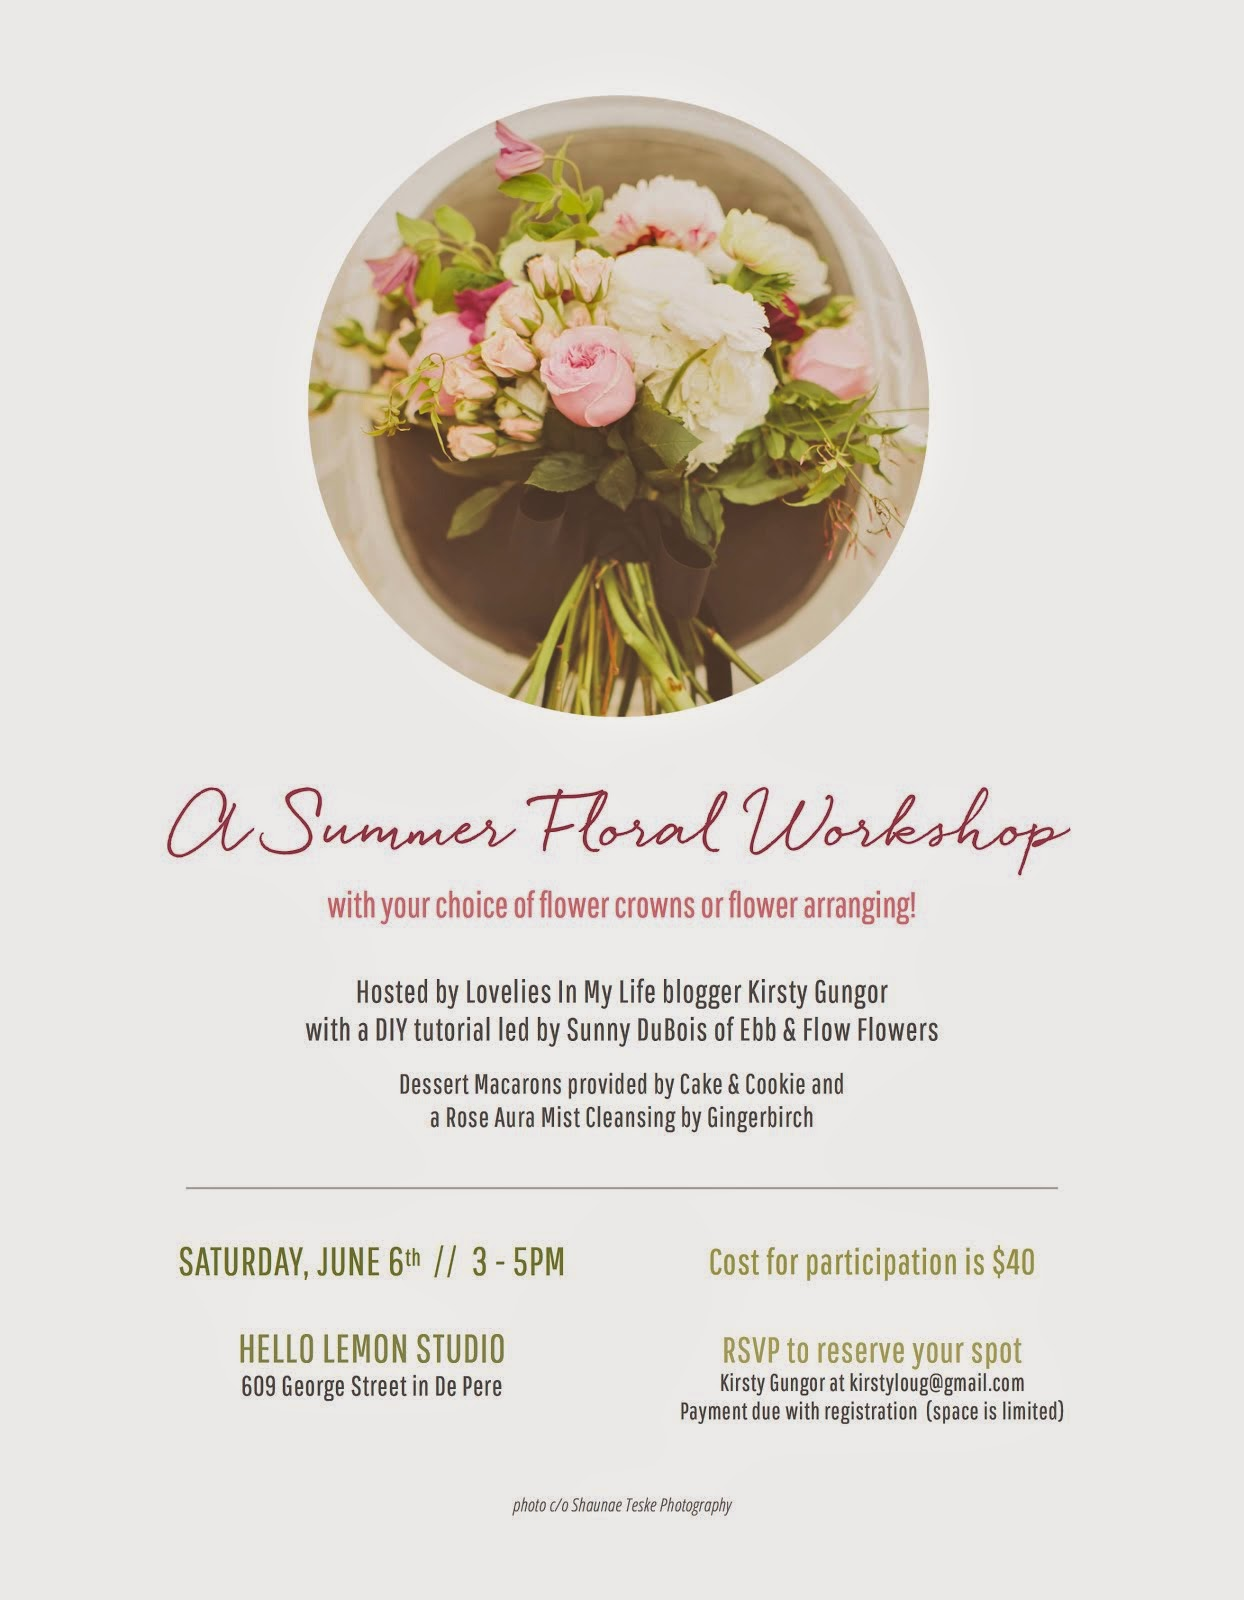 Sign Up for Our Summer Floral Workshop!